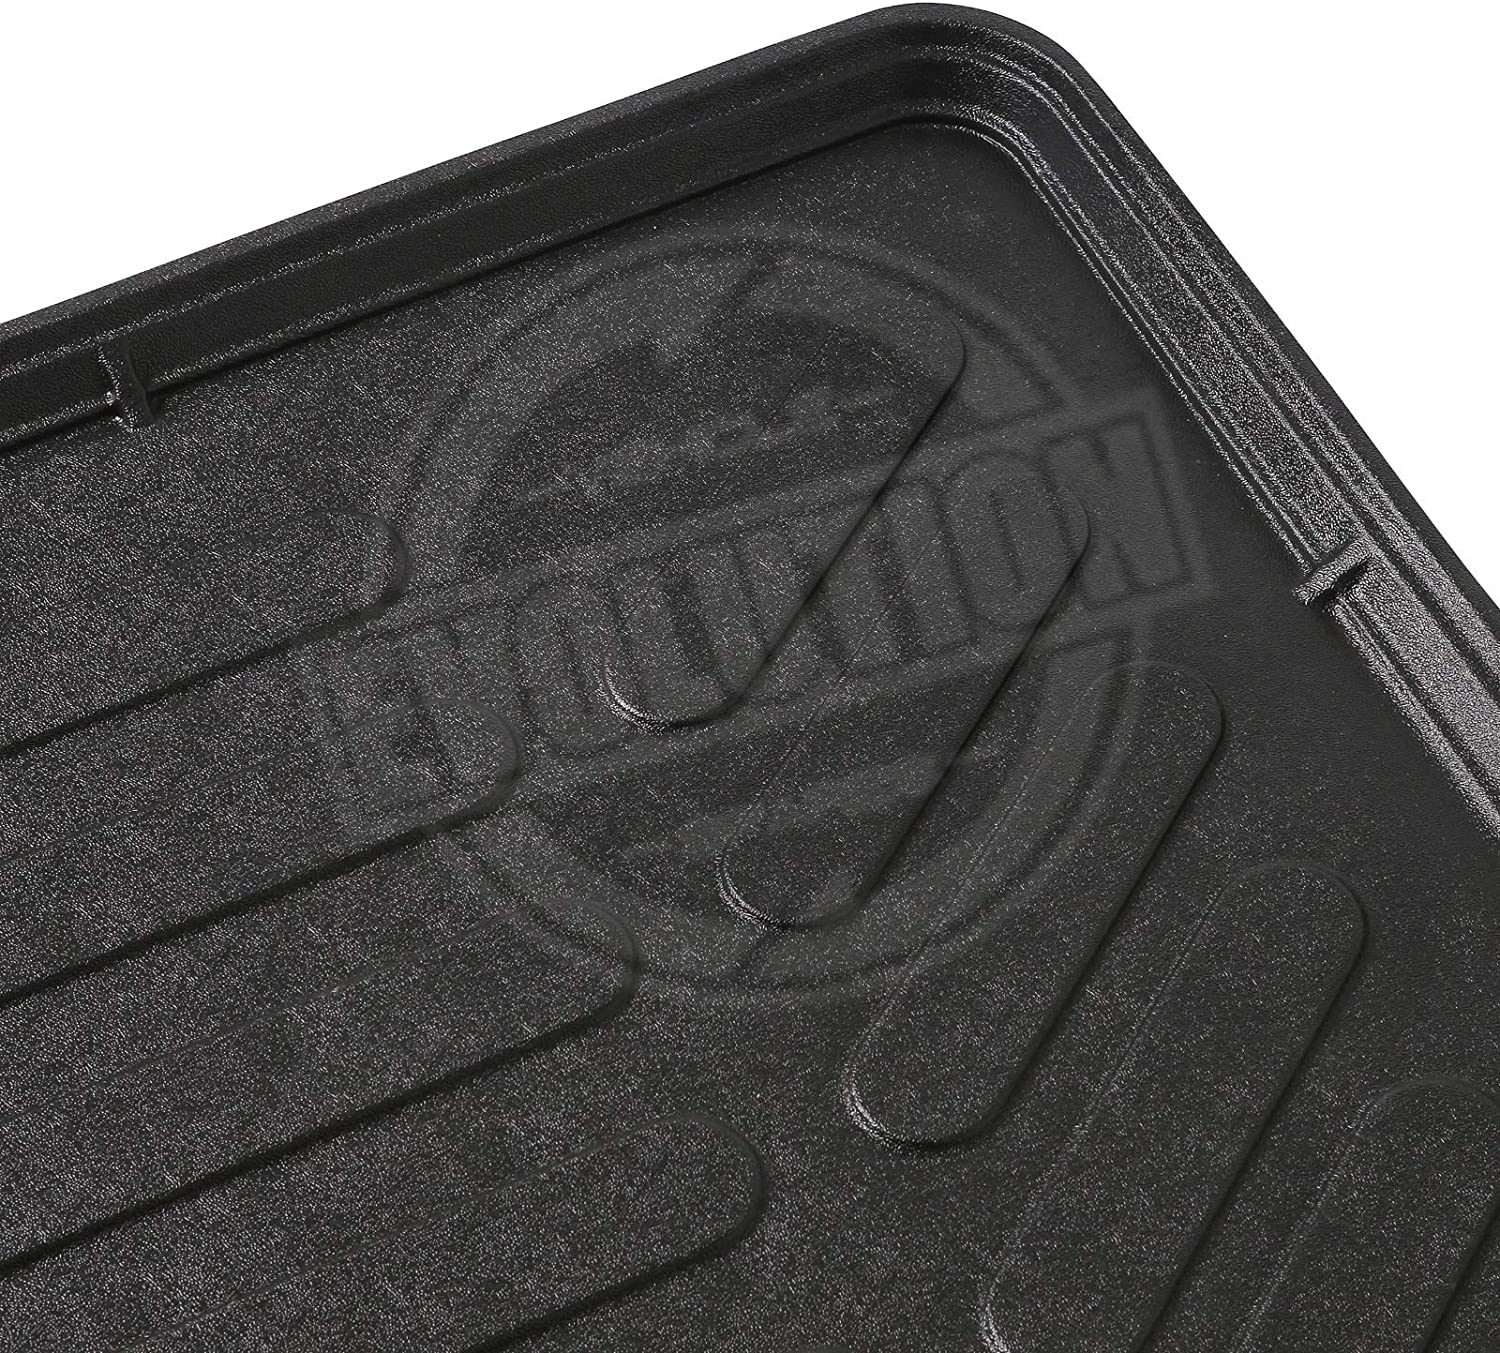 Crossland X Custom Tailored Fit Black Car Trunk Mat Cargo Boot Liner Tray Mat 100/% ODOURLESS NON TOXIC MATERIAL-PERFECT FITMENT